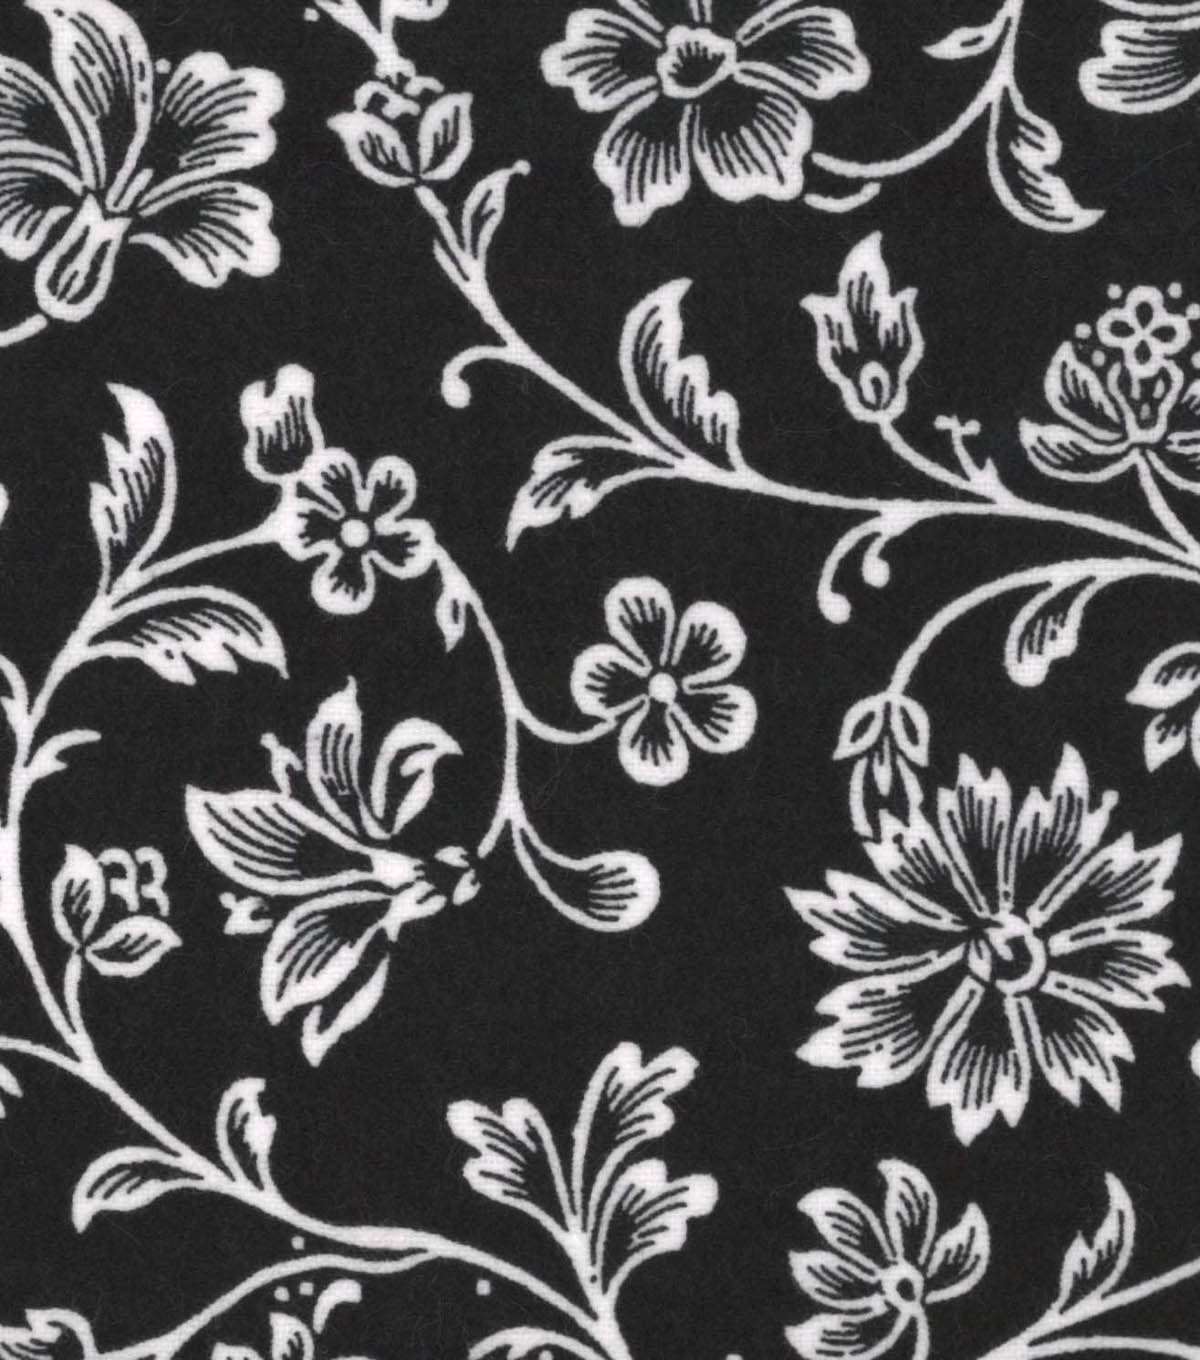 Snuggle Flannel Fabric 42\u0022-Black Floral Vines